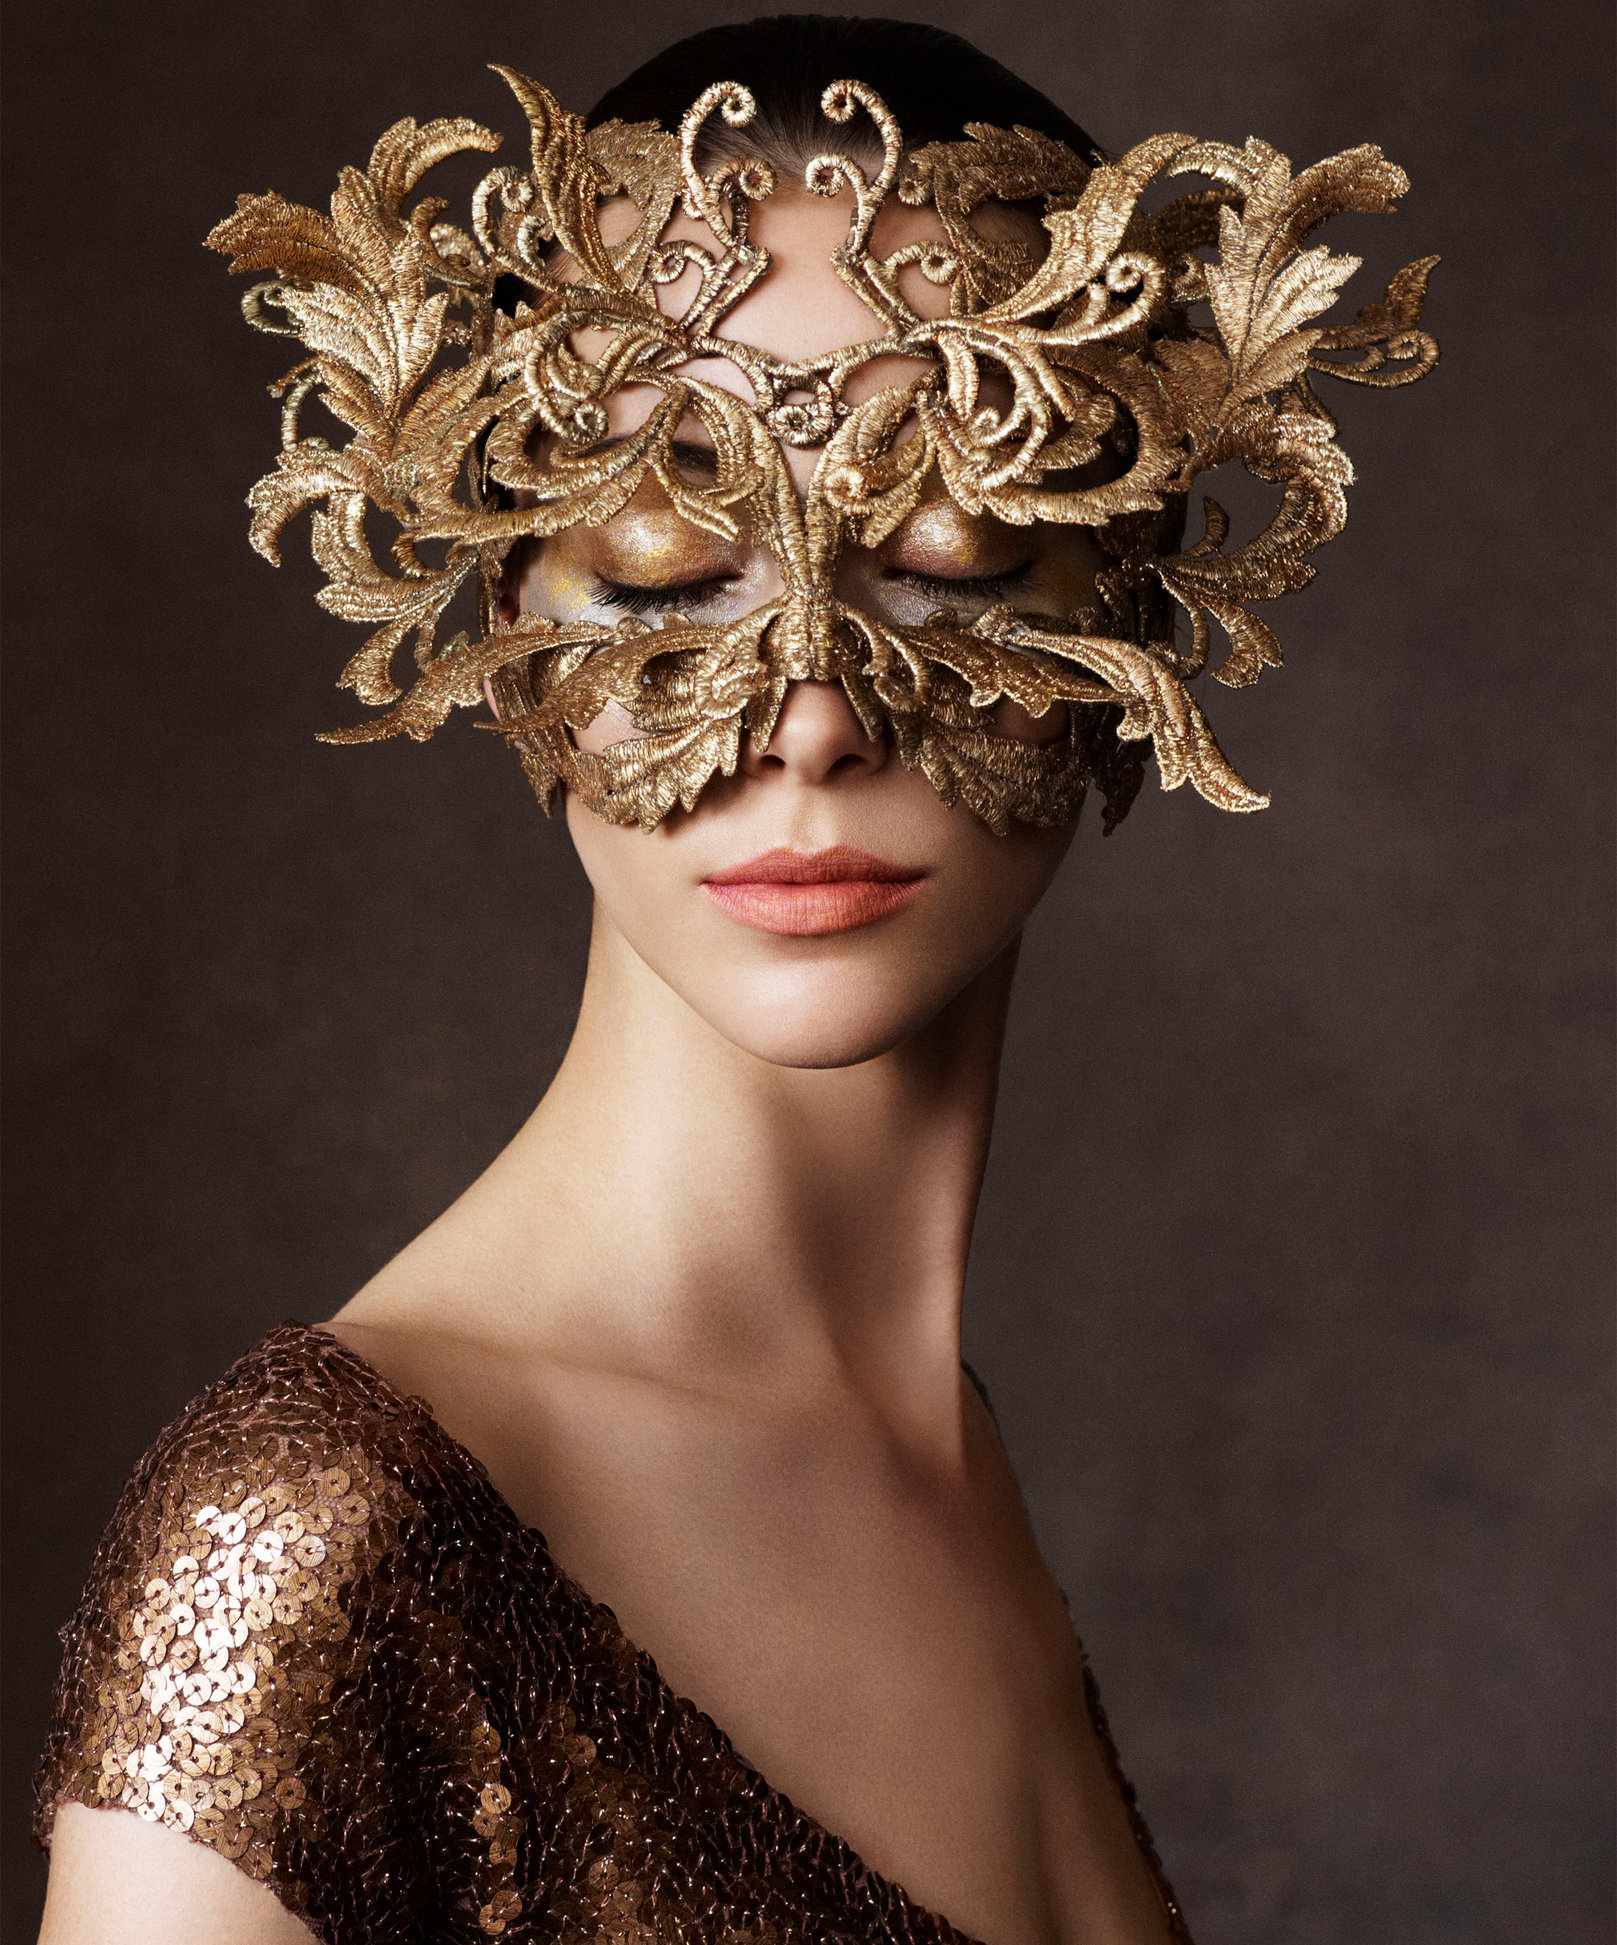 Harper's Bazaar. Alana Zimmer. First You Are Blind Folded..., October 2013